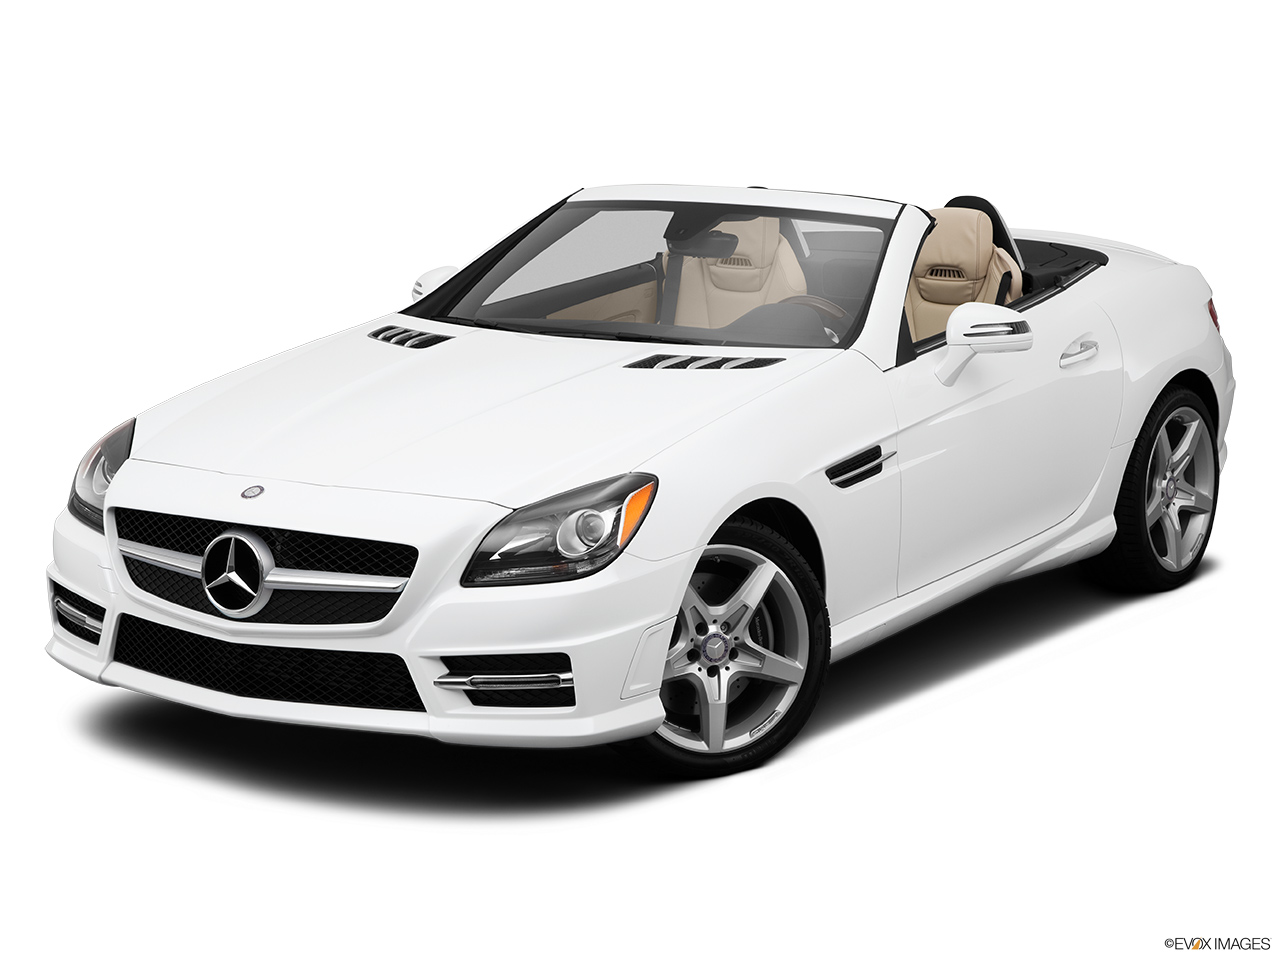 2014 mercedes benz slk class roadster slk250. Black Bedroom Furniture Sets. Home Design Ideas